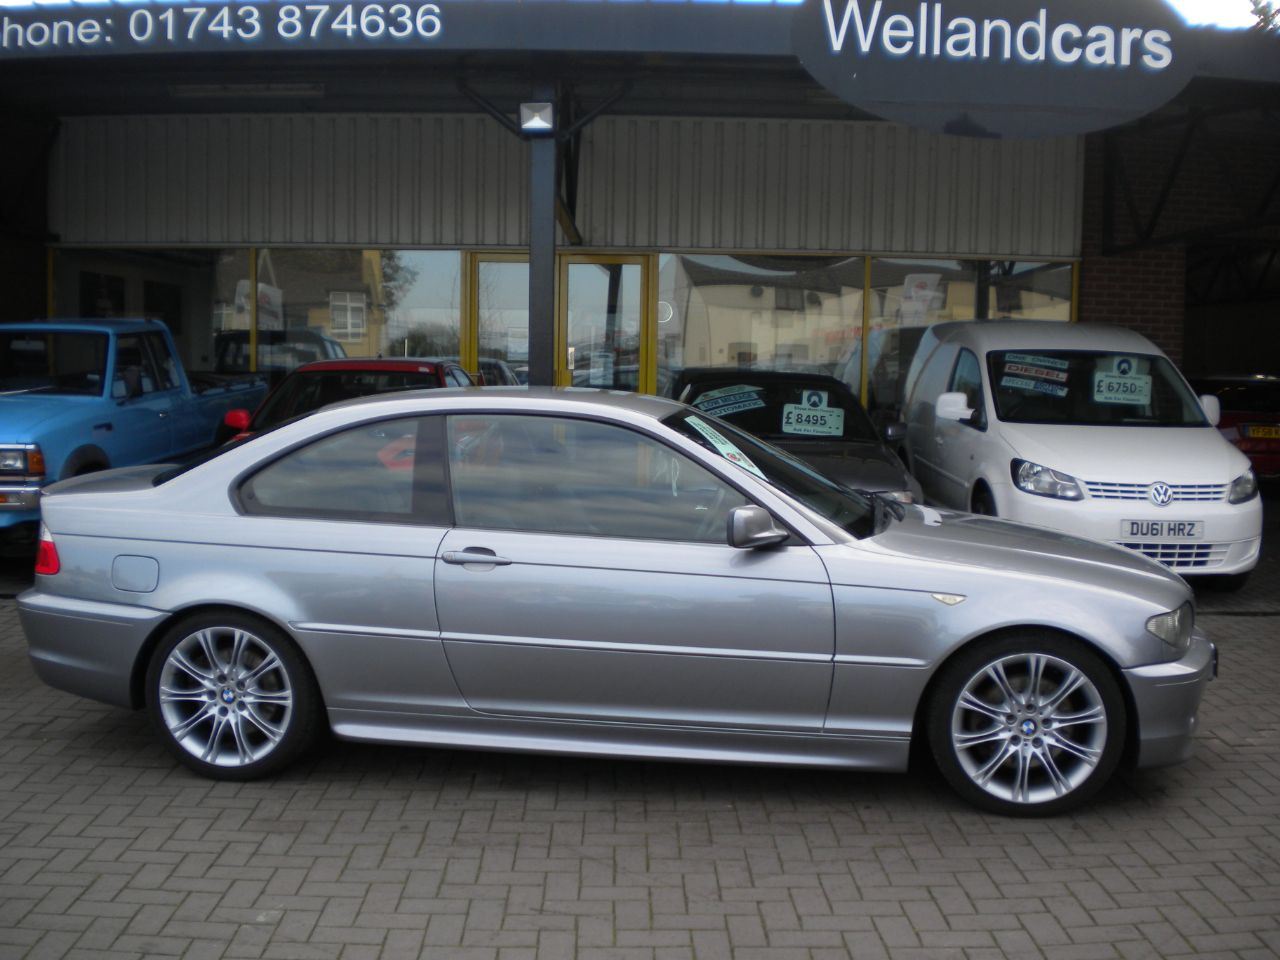 BMW 3 Series 3.0 330Cd Sport 2dr 6 Speed Diesel Manual,F/S/H,Amazing Spec,15 MONTH PARTS AND LABOUR WARRANTY INCLUDED Coupe Diesel Metallic Gun Metal Grey at Welland Cars Shrewsbury